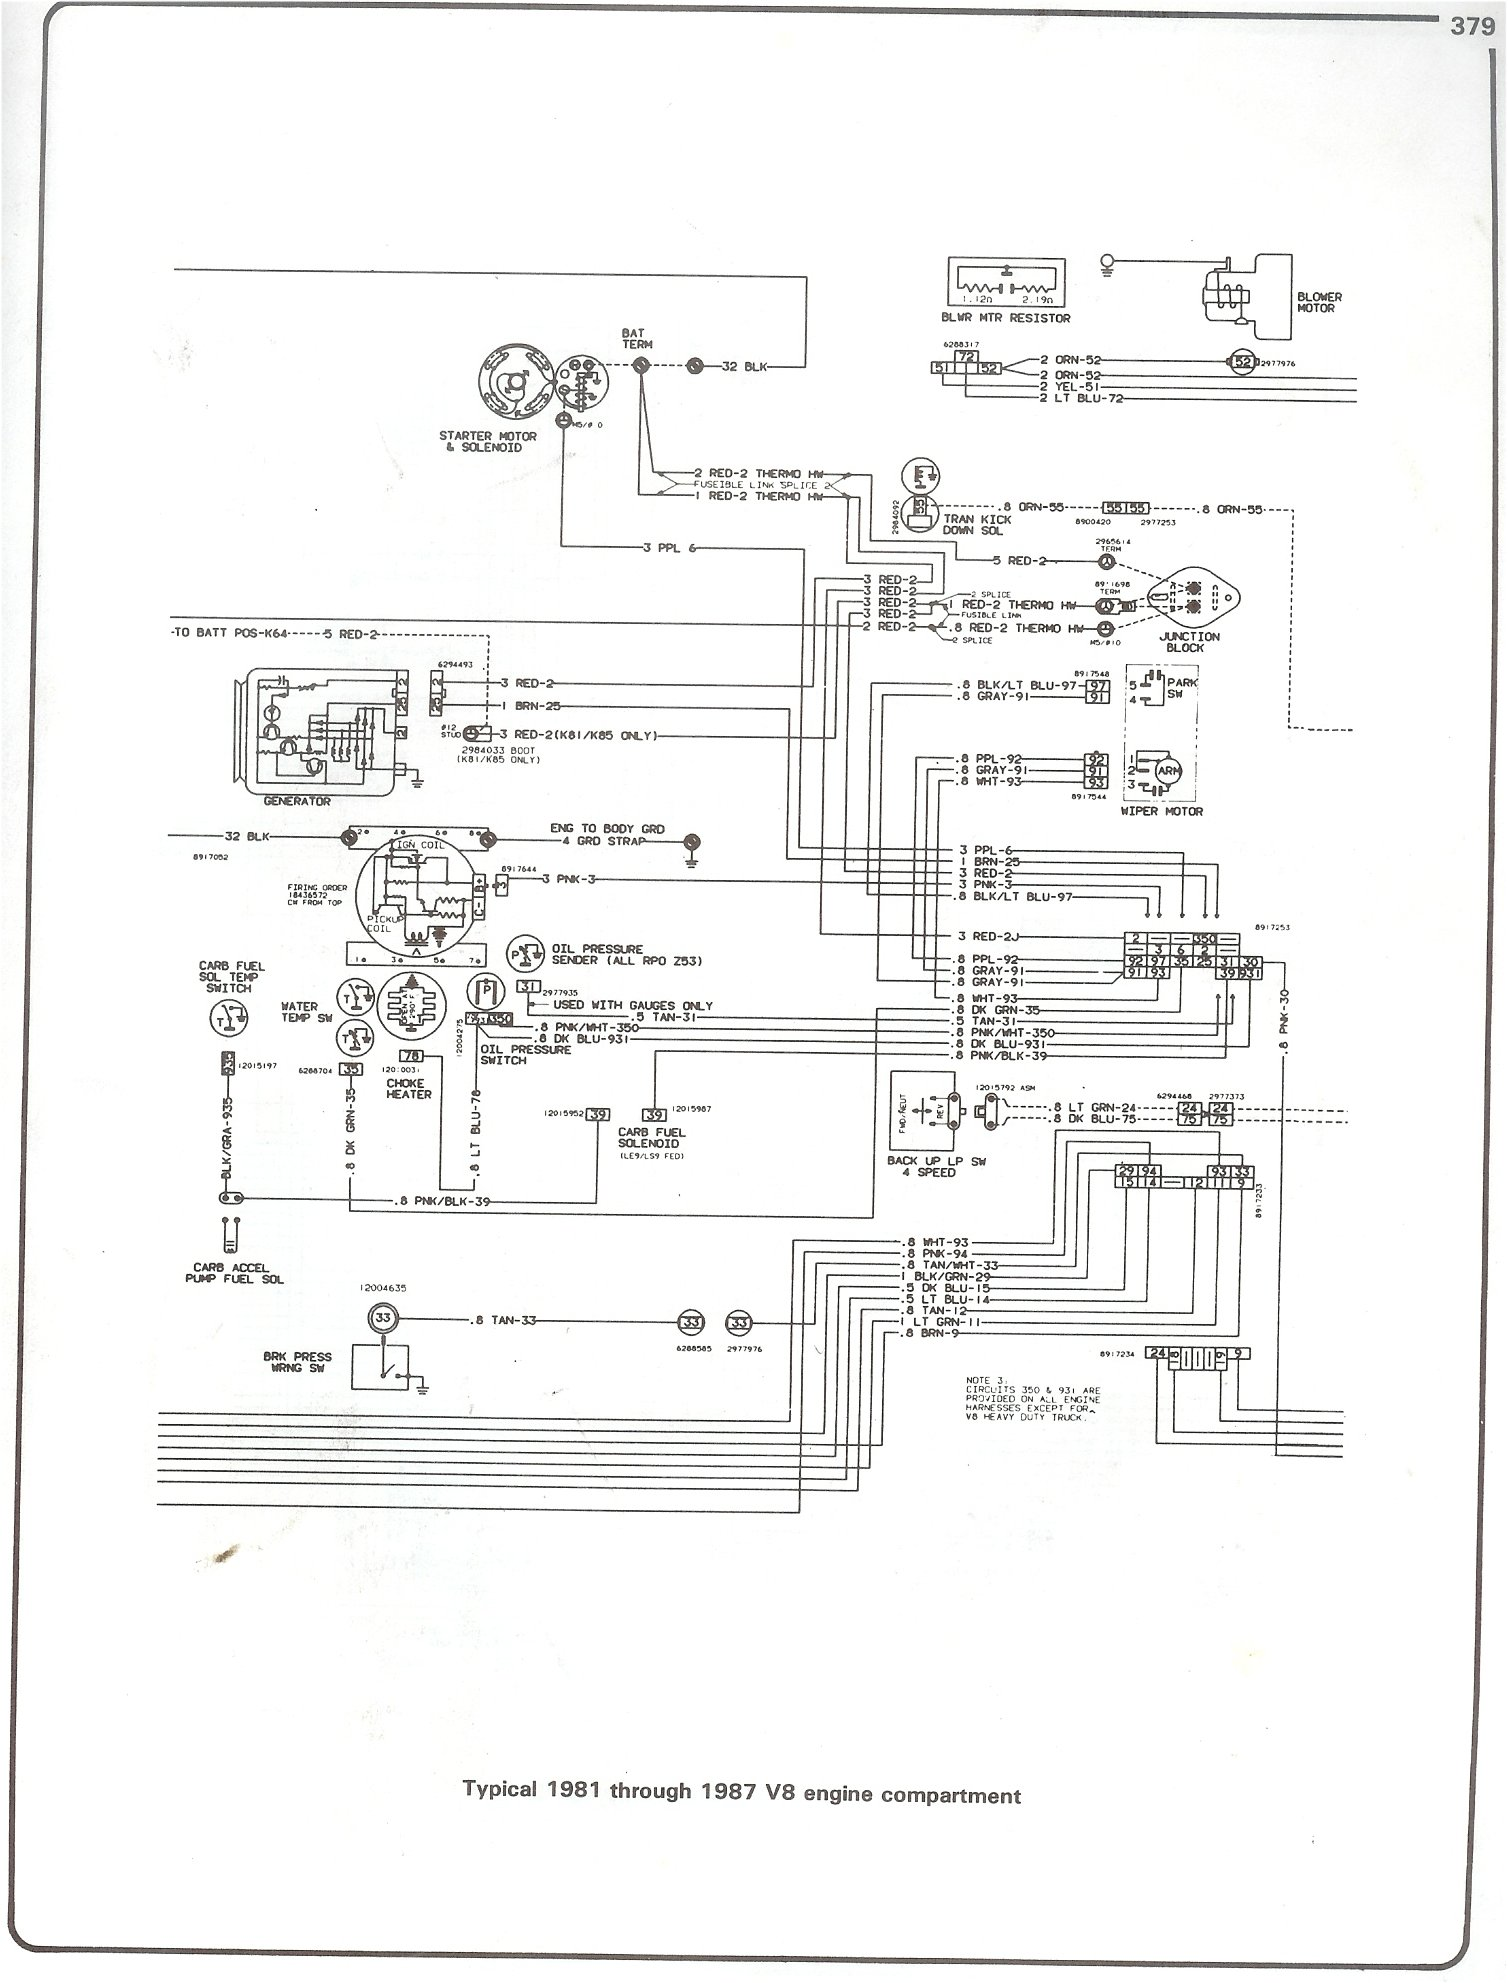 1978 Chevy K 5 Wiring Diagram Schematic Data American Auto Wire Diagrams Complete 73 87 1972 C10